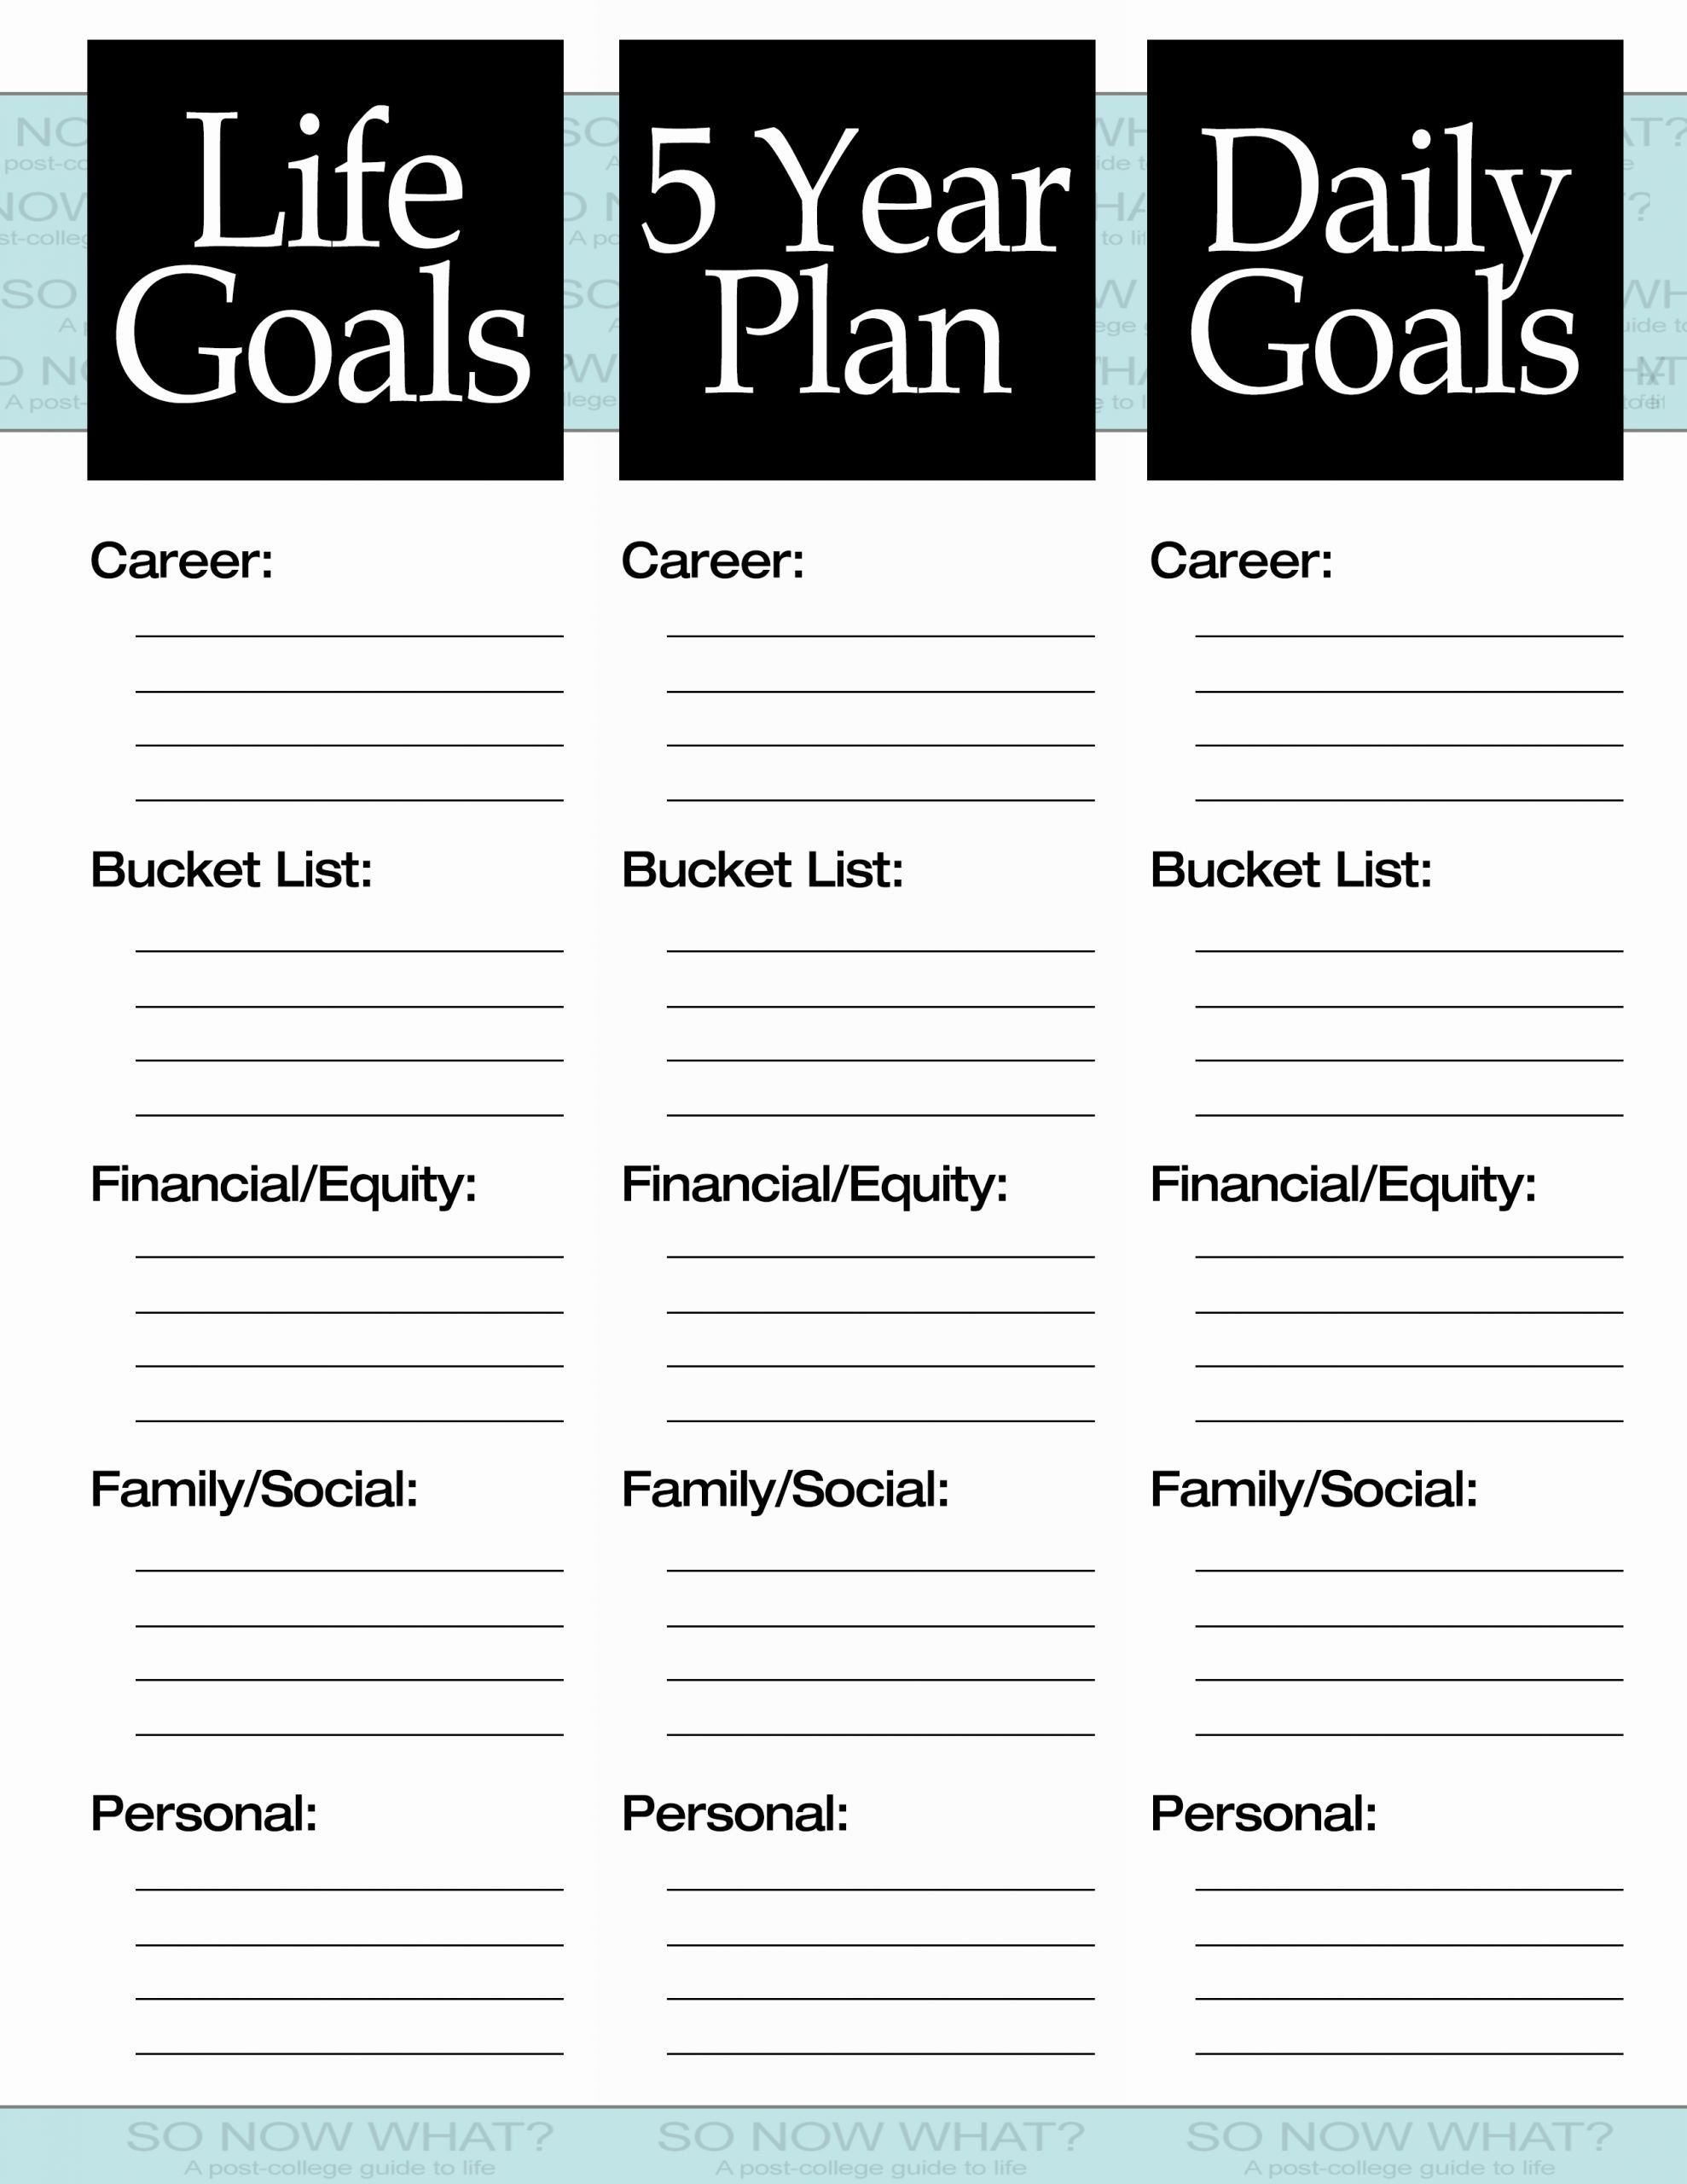 5 Year Plan Template Best Of The 3 Steps To A 5 Year Plan In 2020 5 Year Plan Life Plan Template How To Plan